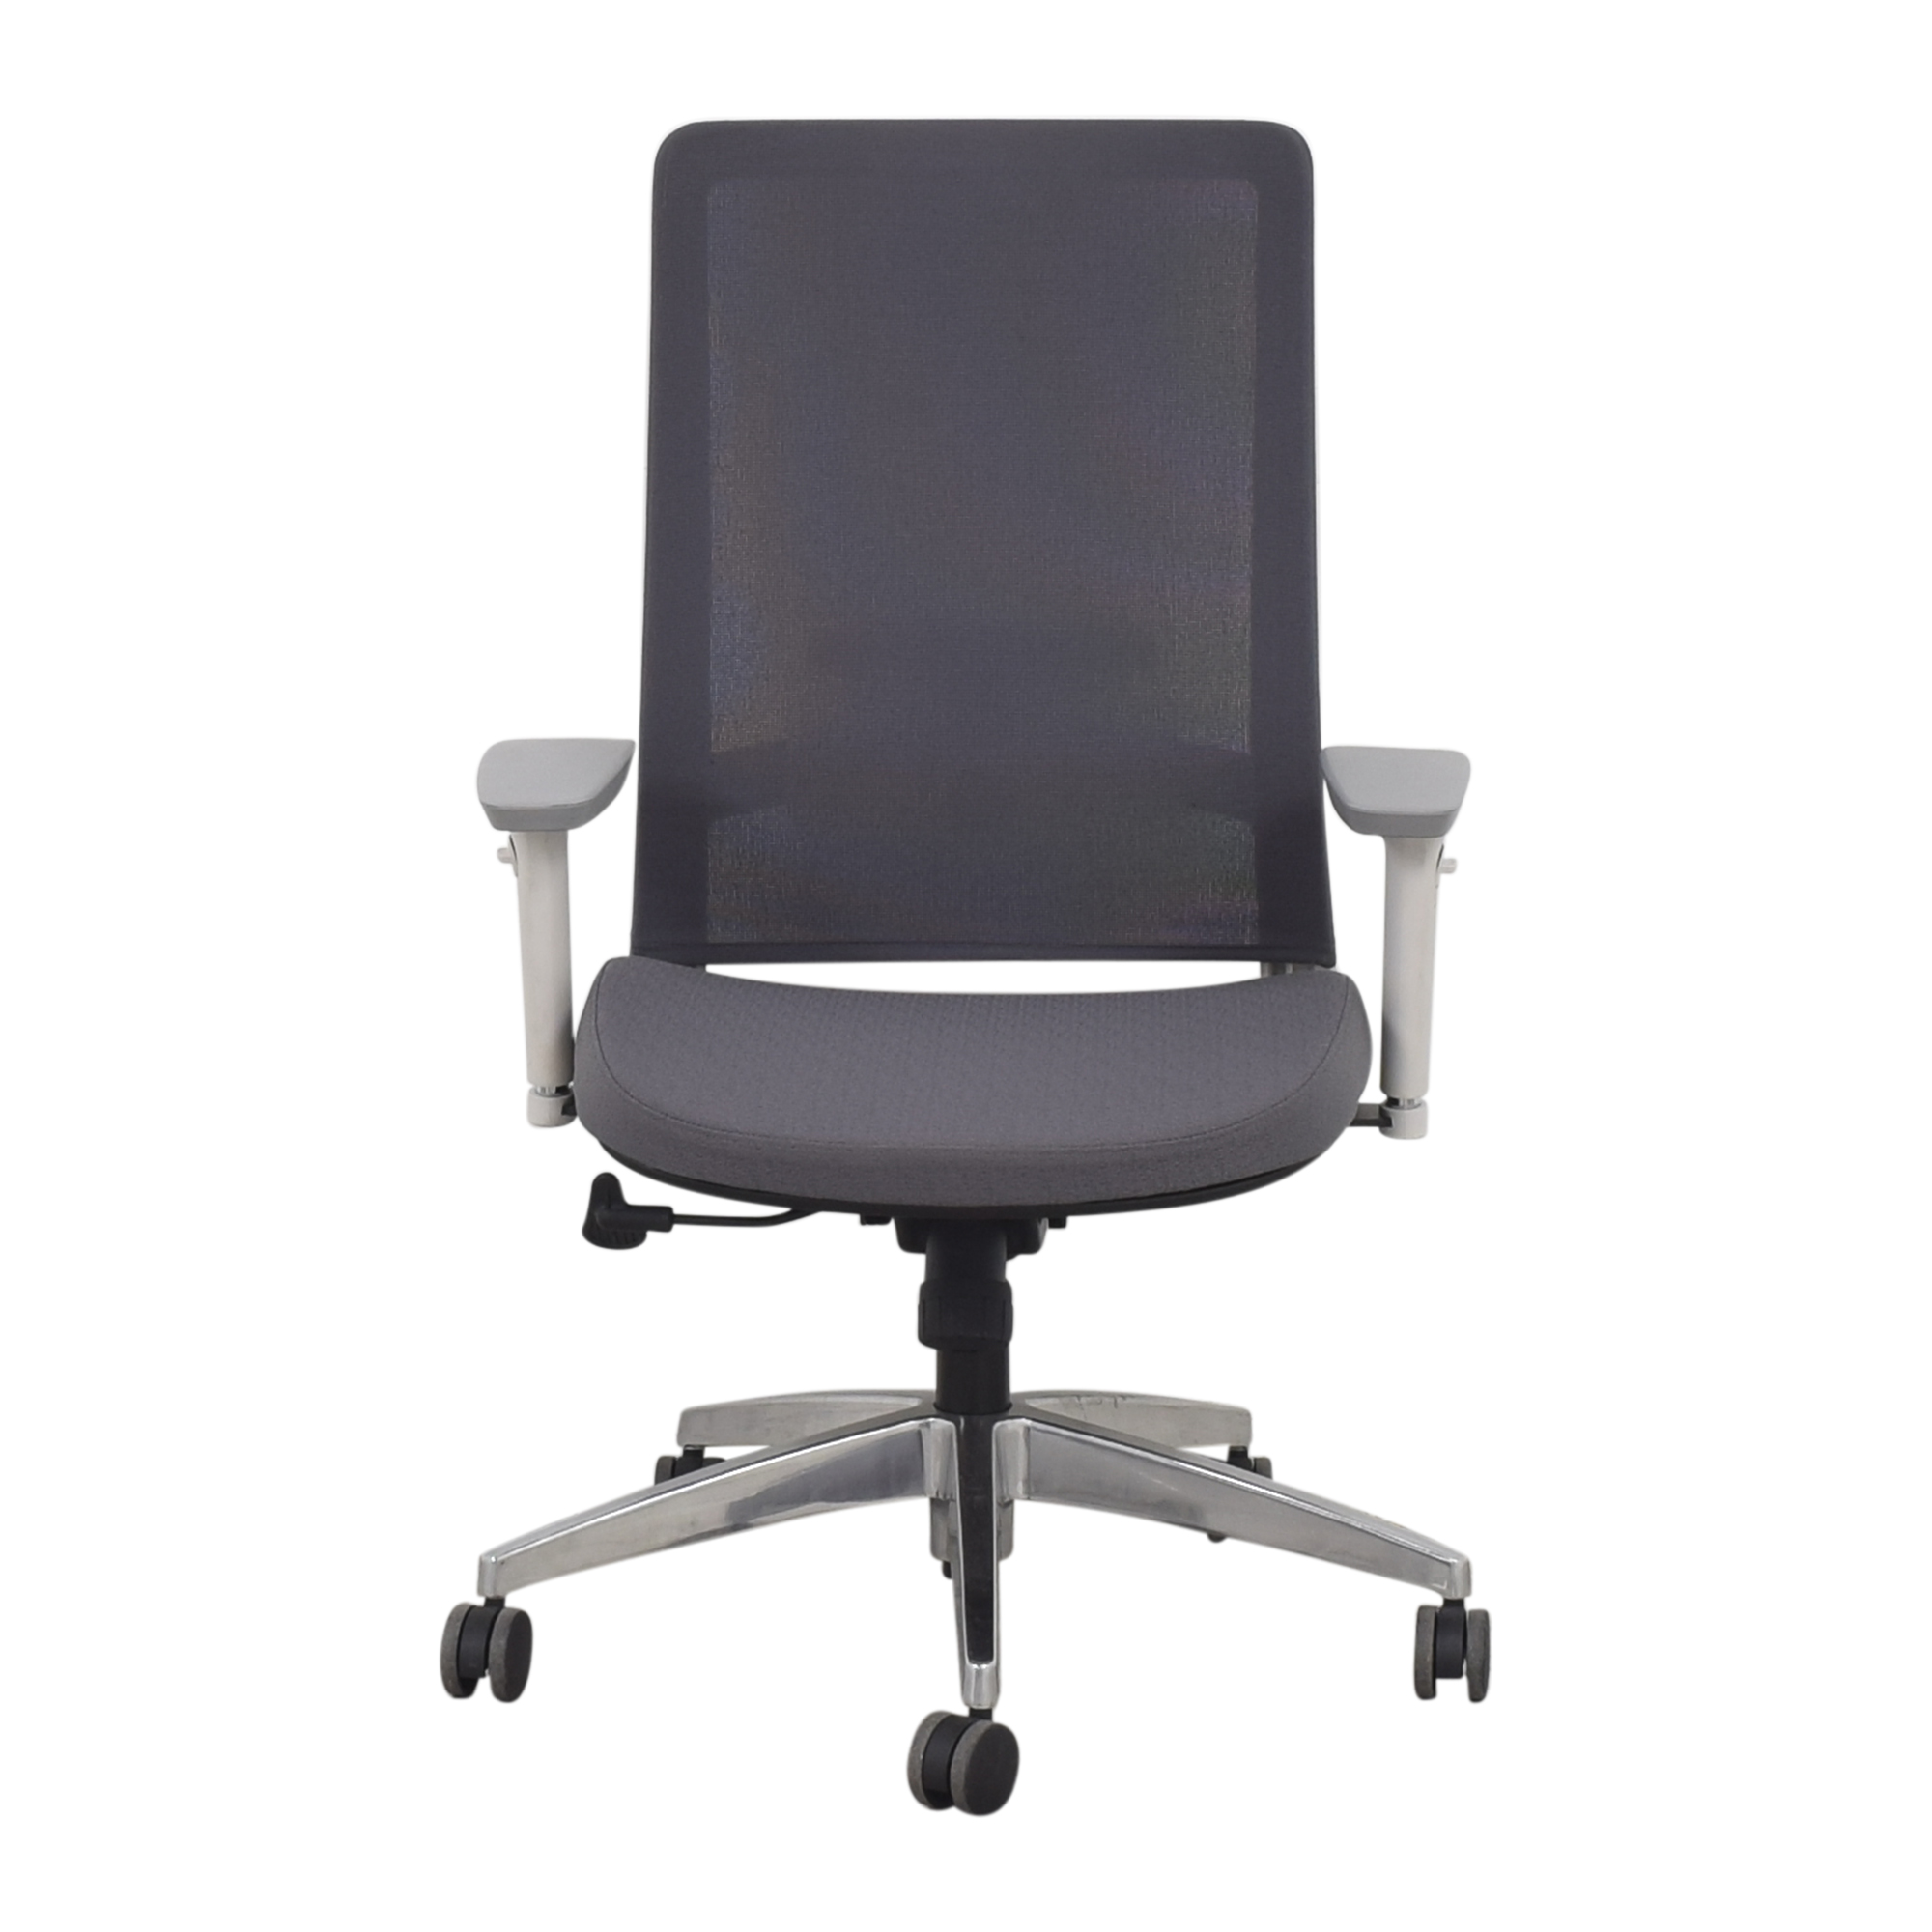 Global Furniture Group Global Furniture Group Factor High Back Office Chair on sale